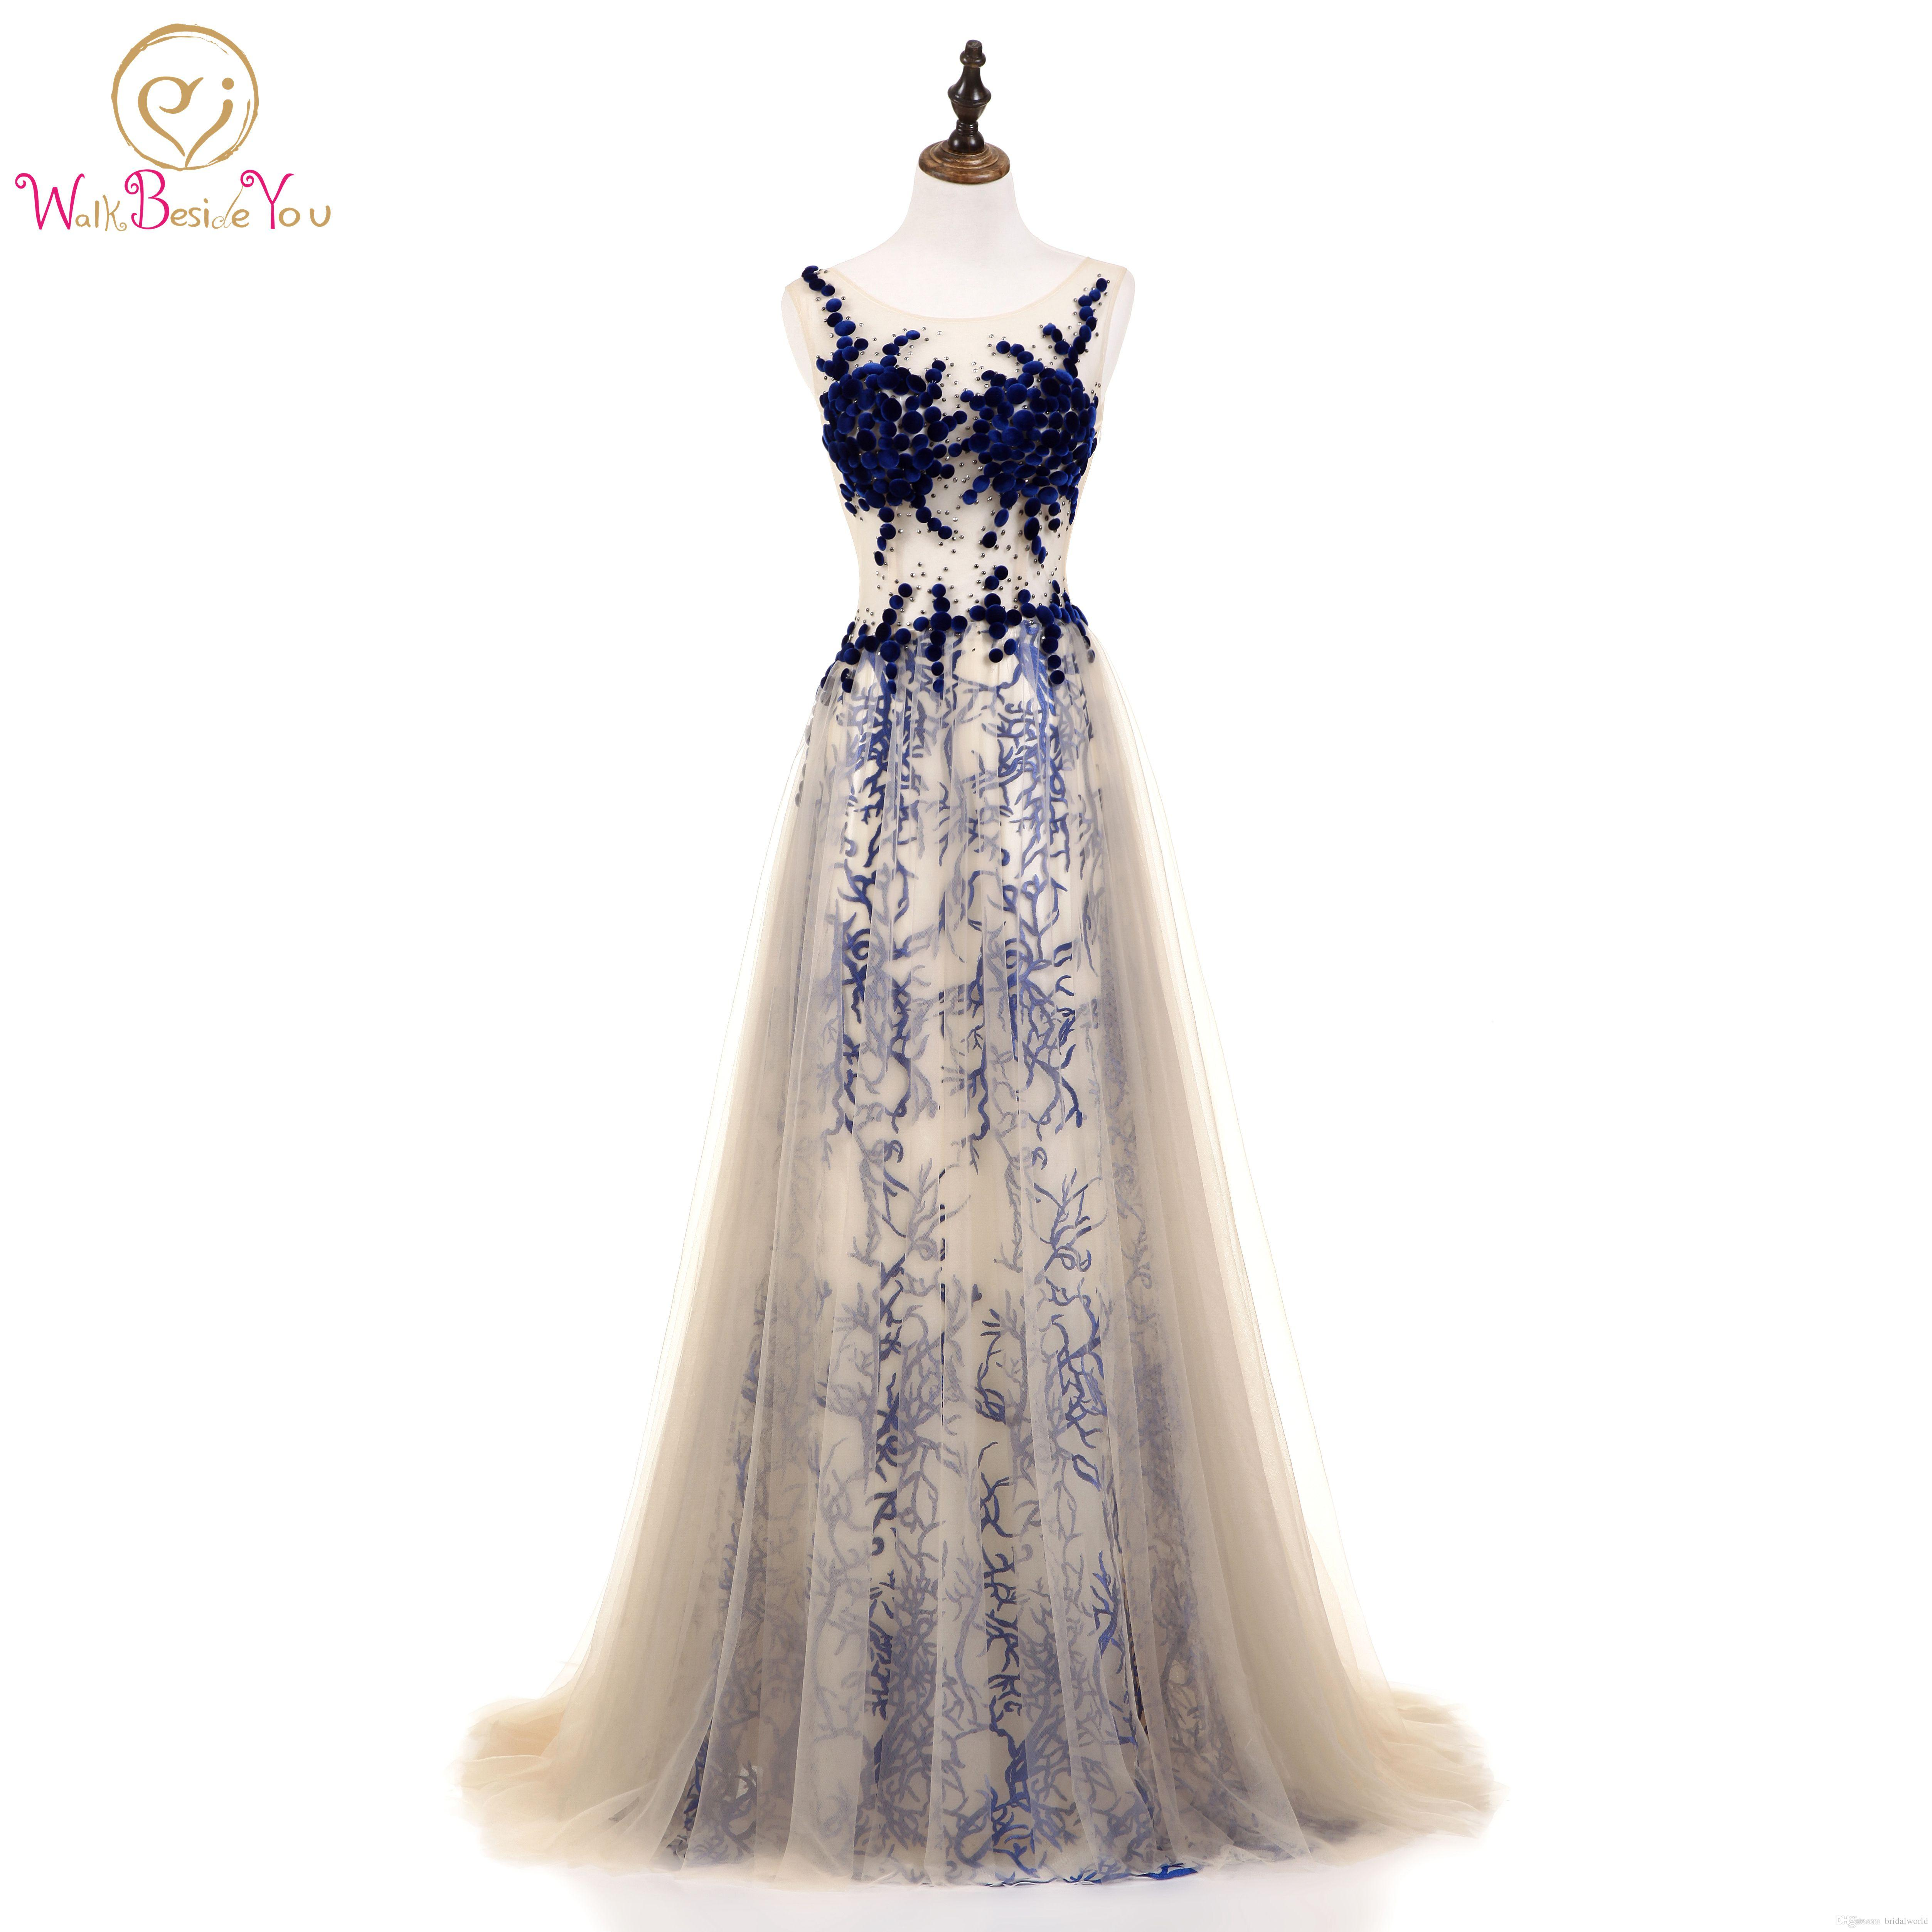 a7bc118a81cb9 Walk Beside You Champagne Evening Dresses Sexy See Through Royal Blue Lace  Crystal A-line Prom Gown Long Summer Dress 2018 Stock